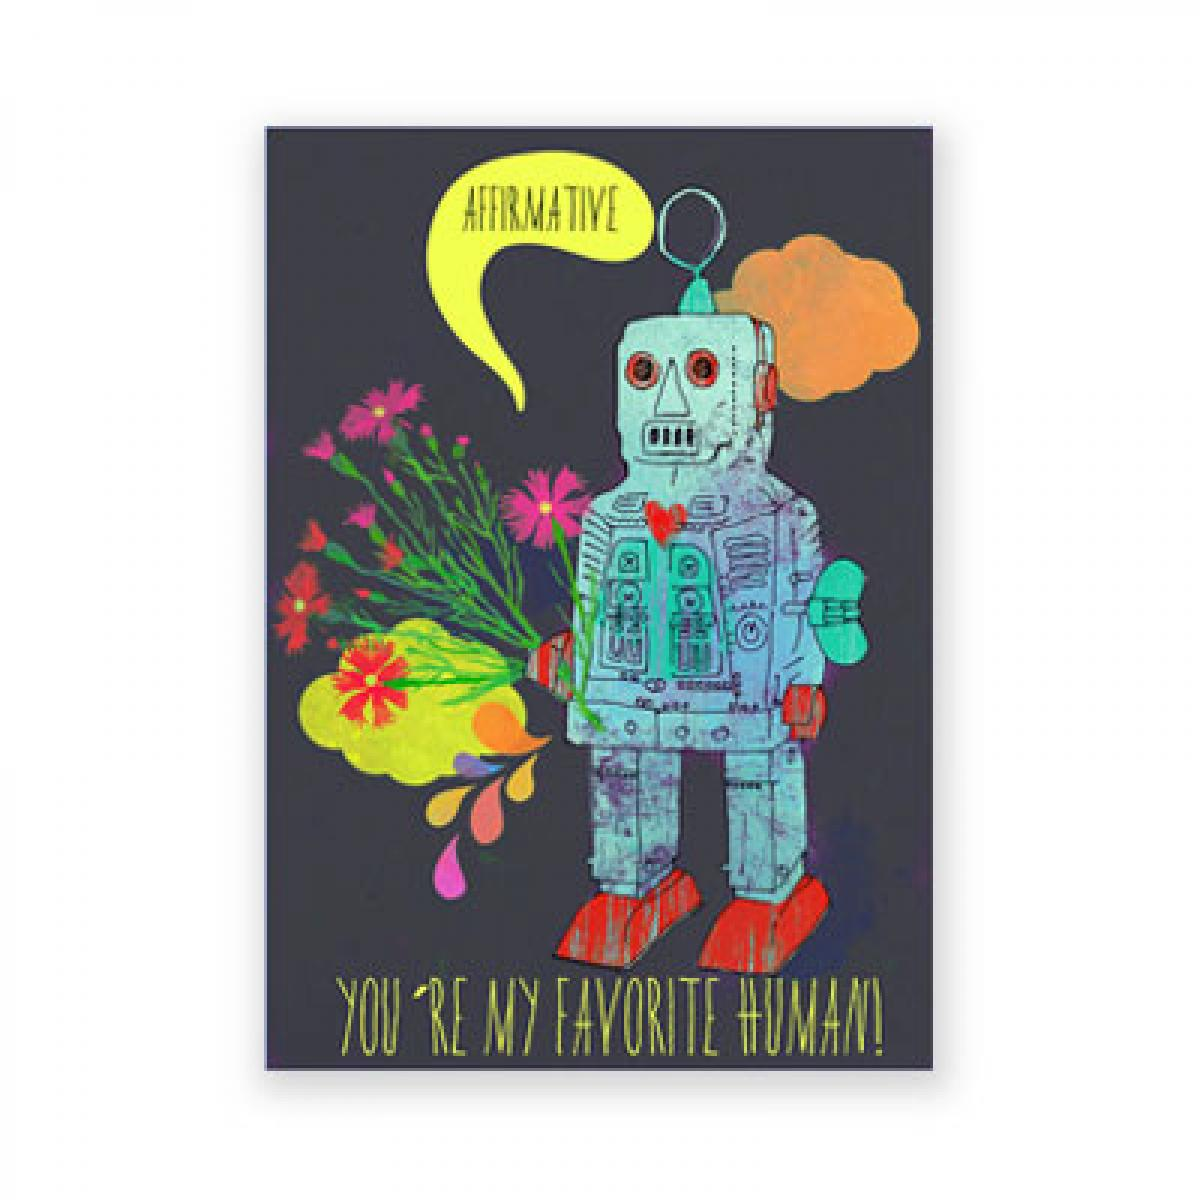 Postkarte mit Roboter: You´re my favorite human!